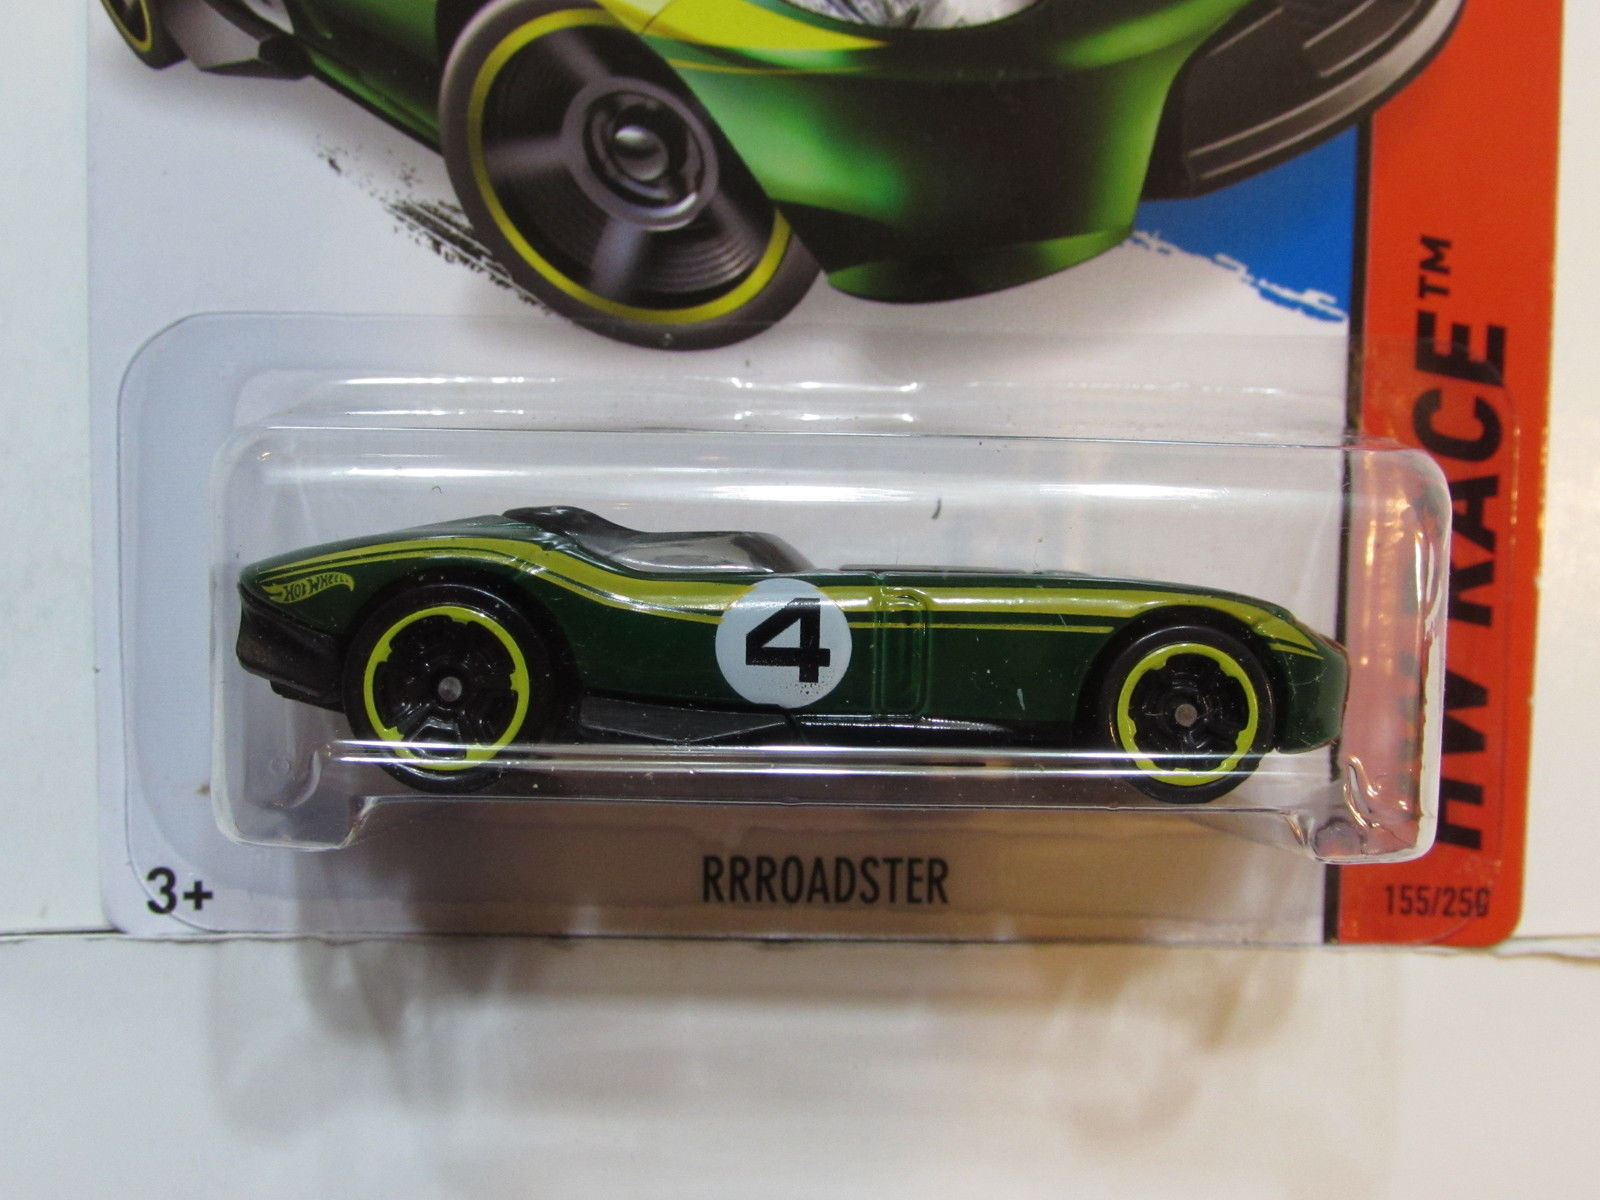 HOT WHEELS 2014 HW RACE RRROADSTER FACTORY SEALED GREEN